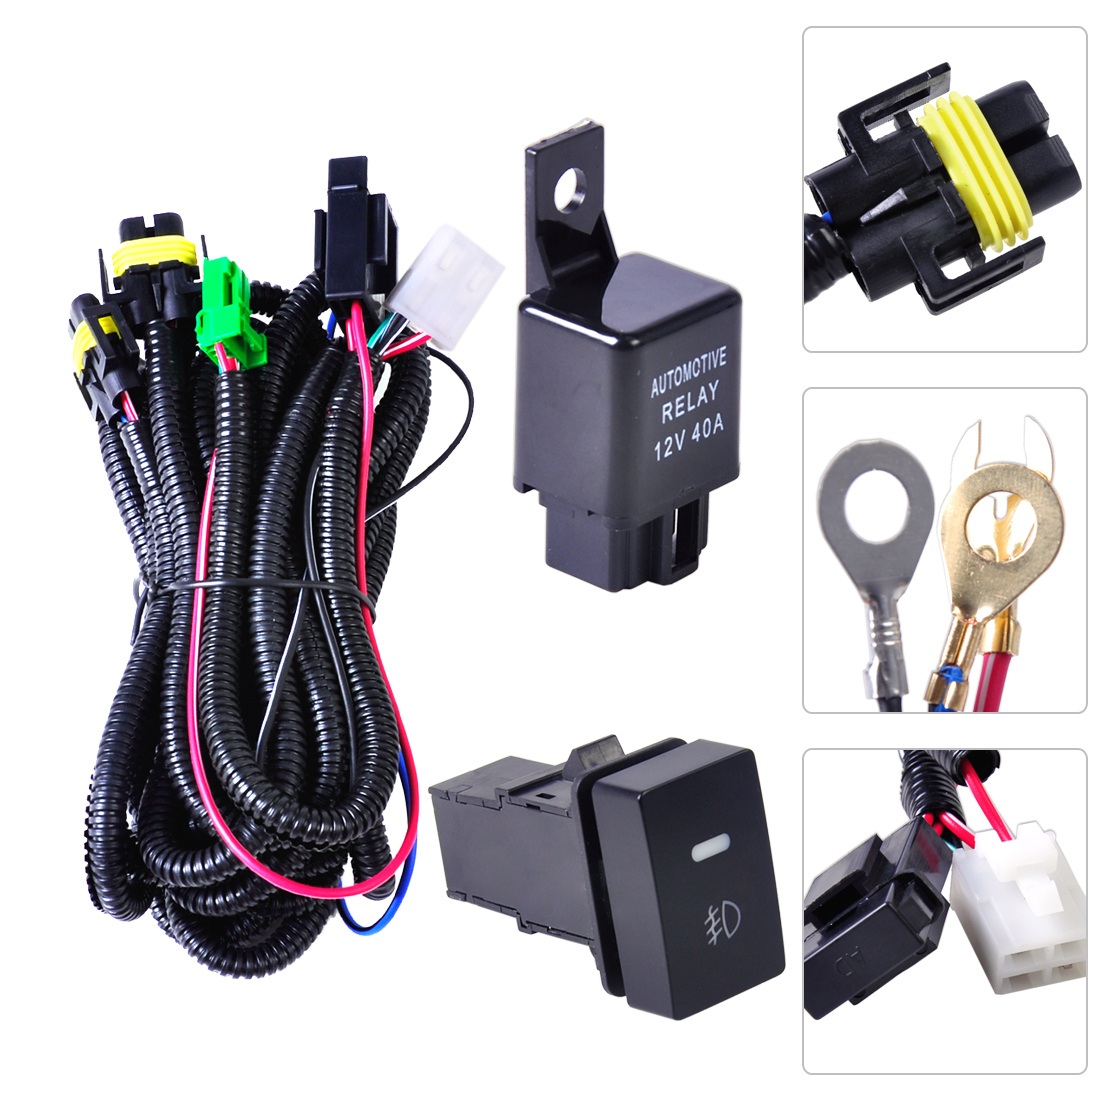 7 Pin 2 Led Light 12 24v Car Style On Off Laser Etched Rocker Round 3 Prong Blue Switch Spst Toggle 12v Ebay Beler Wiring Harness Sockets Wire For H11 Fog Lamp Ford Focus Acura